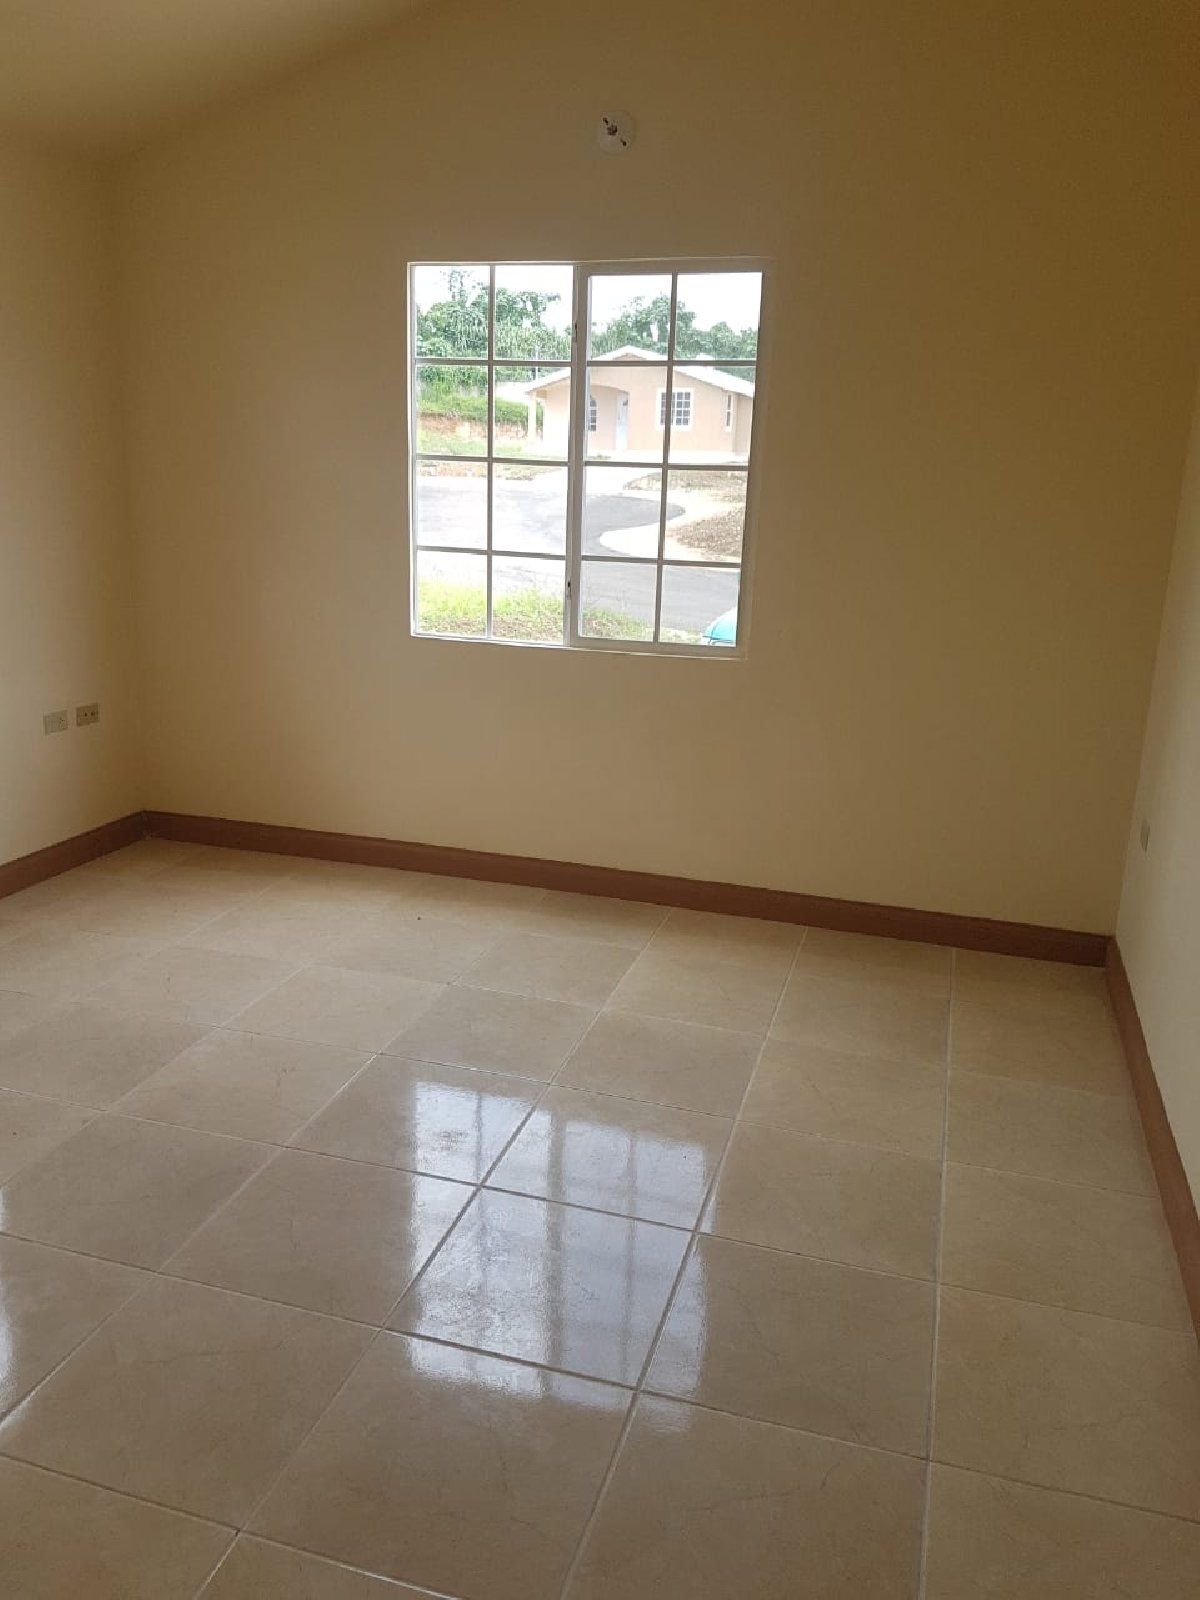 Newly Built Unfurnished 2 Bedroom 2 Bathroom For Rent In